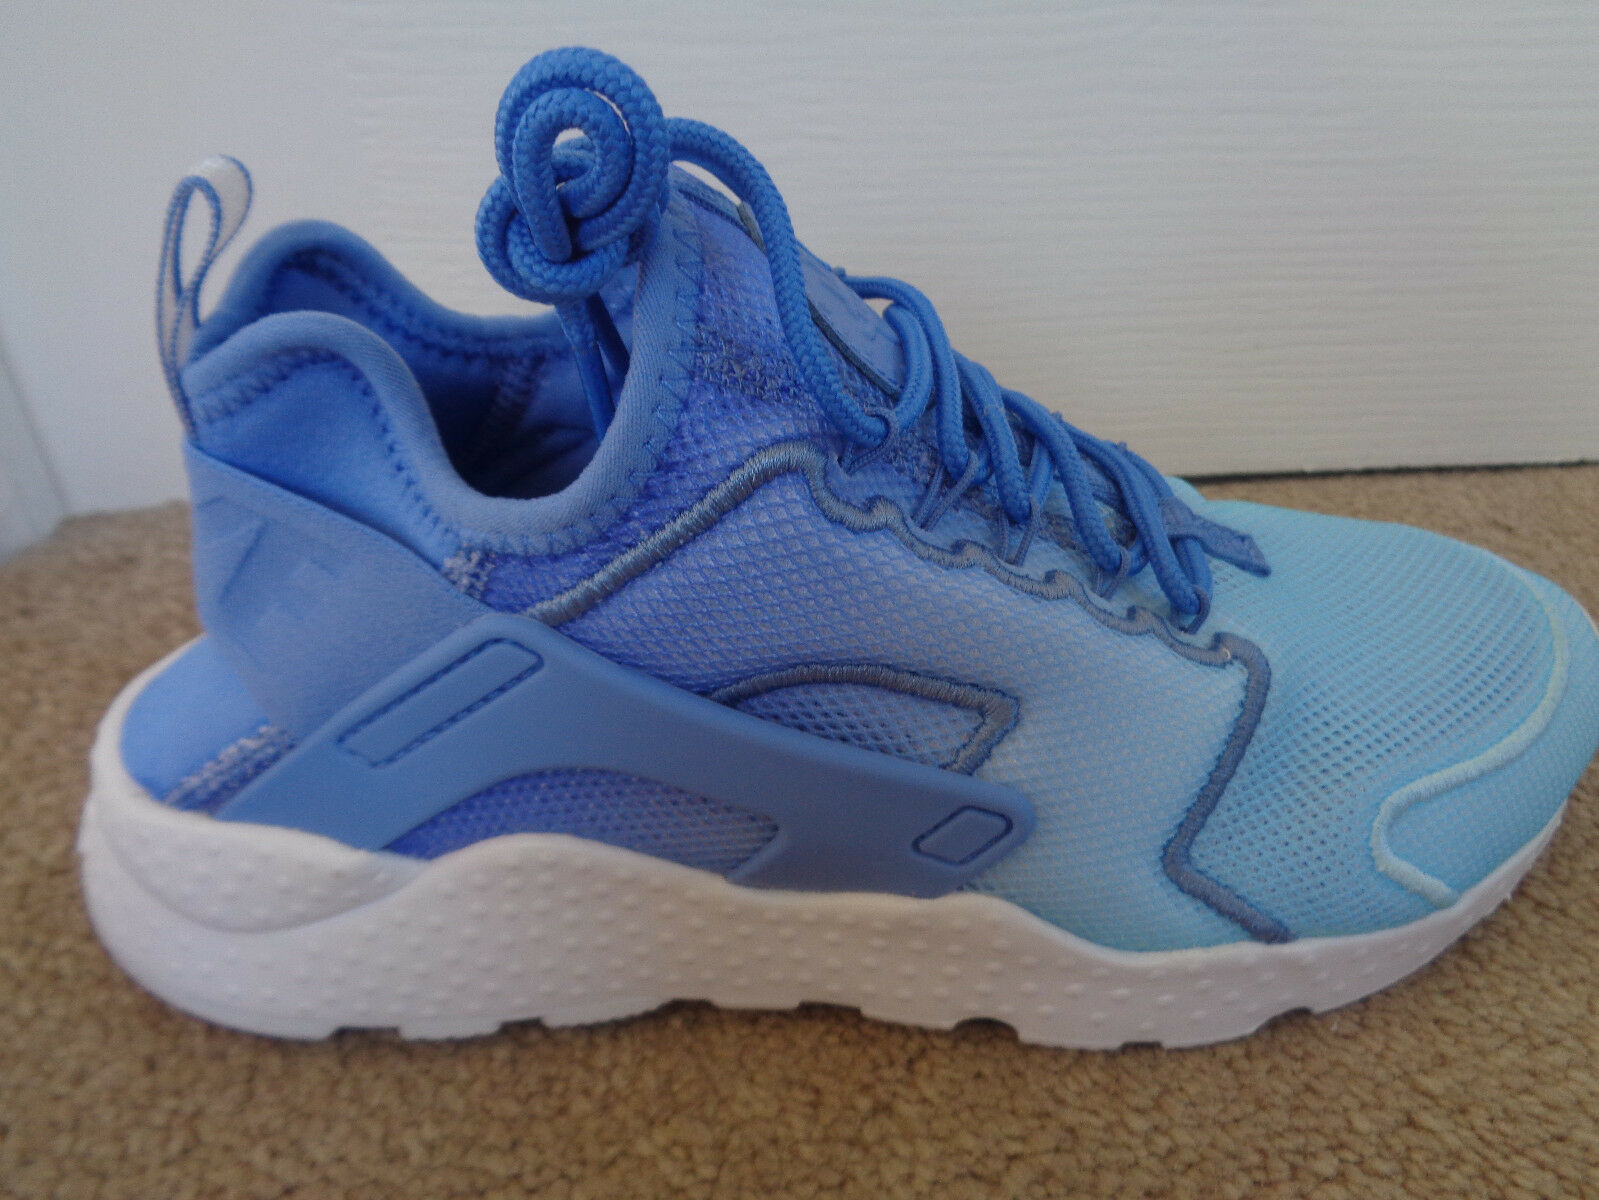 Nike Air Huarache Run Ultra BR trainers 833292 401 4.5 uk 4.5 401 eu 38 us 7 NEW+BOX 3ba15e